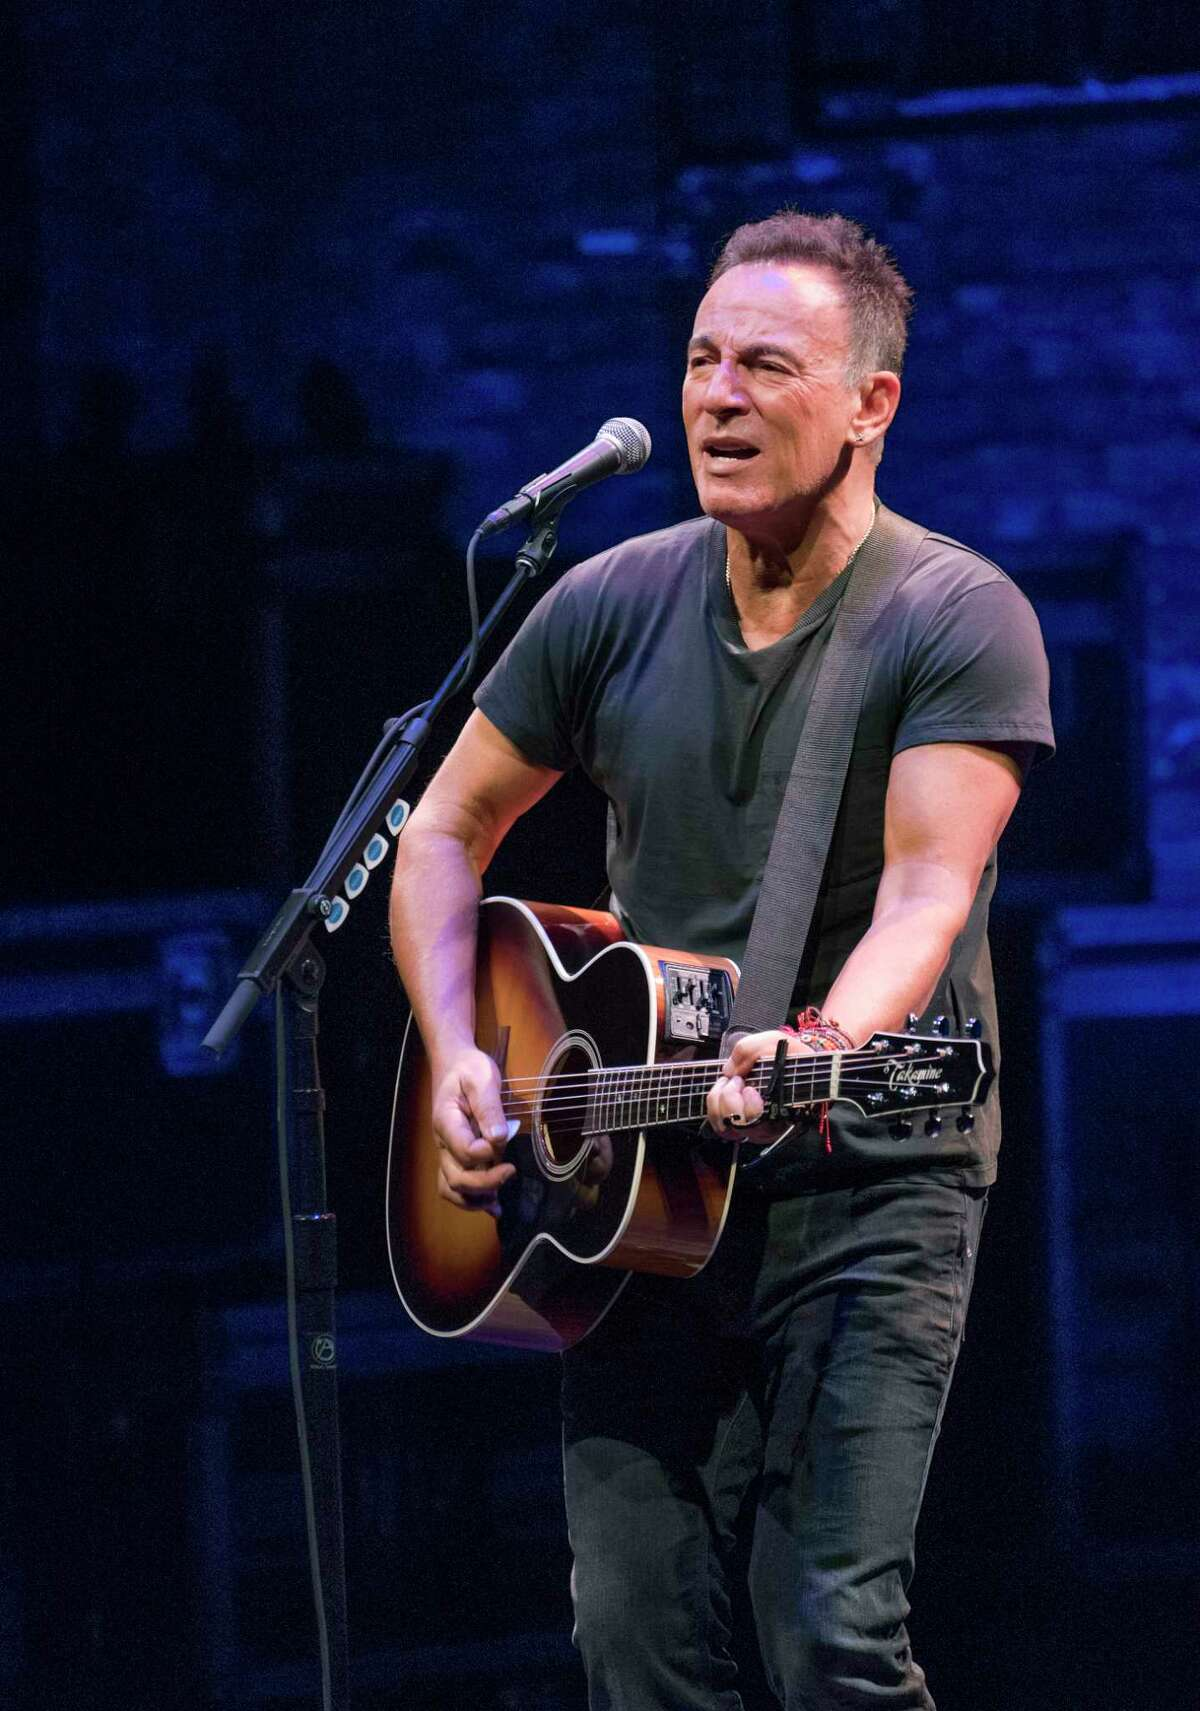 """Bruce Springsteen performs in """"Springsteen on Broadway,"""" his solo concert run at the Walter Kerr Theater in New York, Oct. 5, 2017. Netflix is releasing a film version of the show on Dec. 16, 2018, the day after the last live performance; the entire run was sold out far in advance and tickets for the last show are running for as much as $40,000 each."""